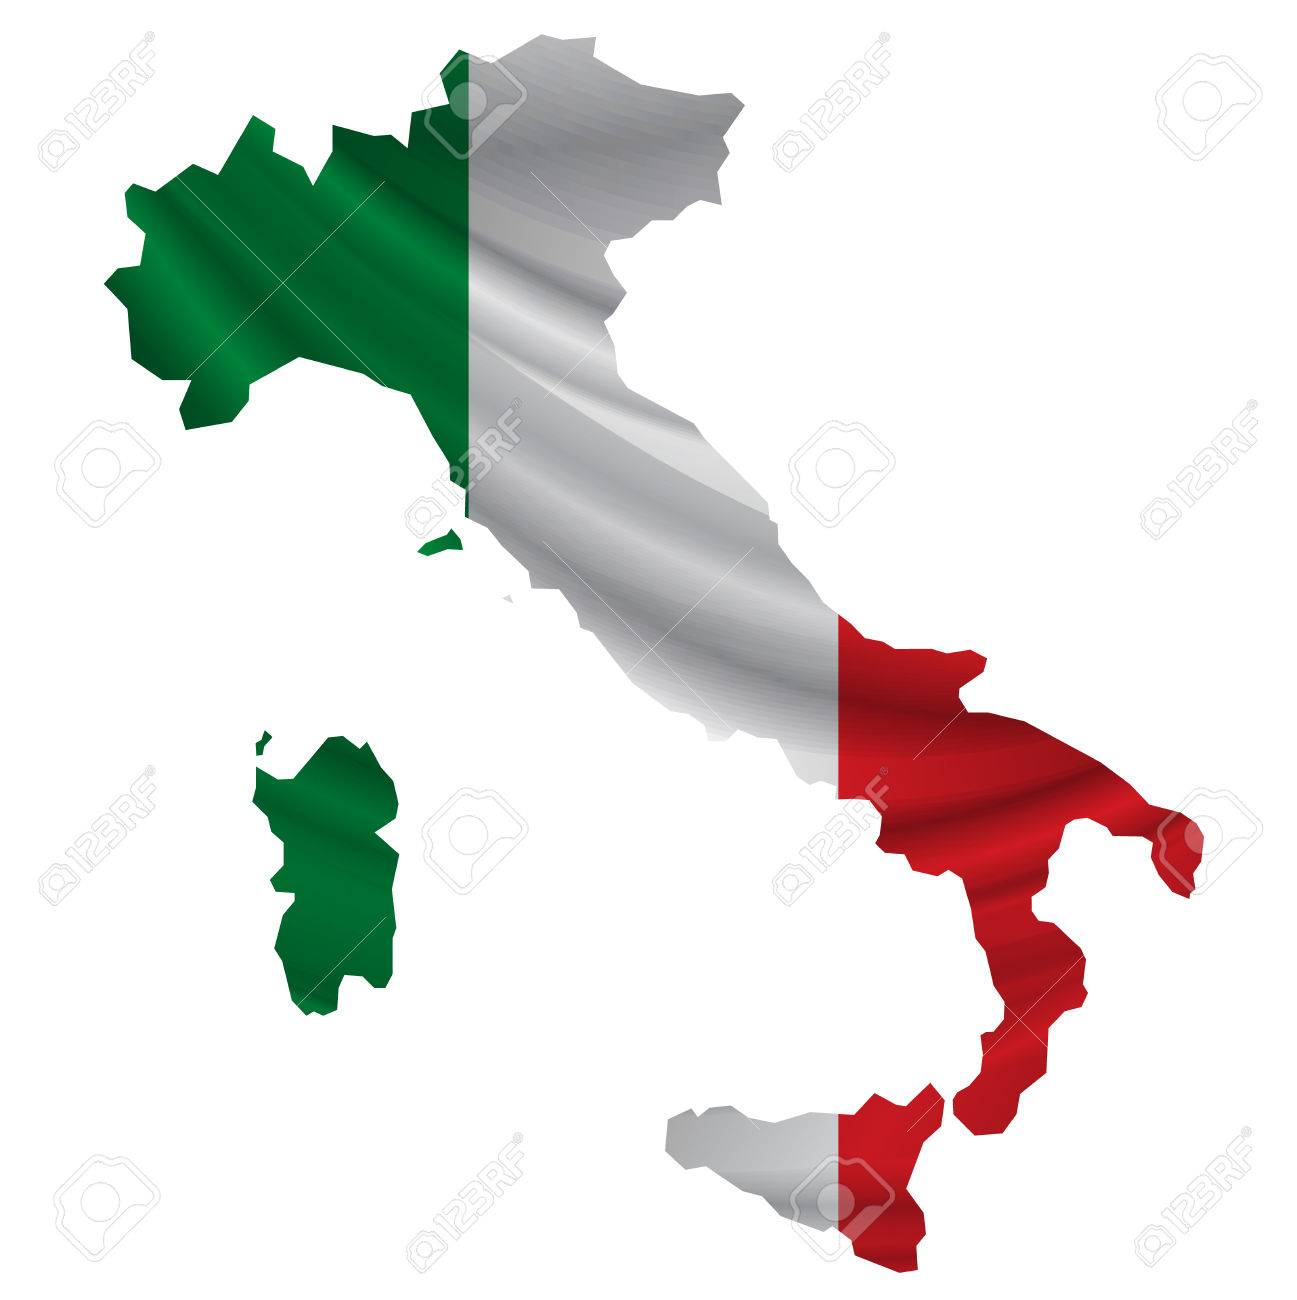 Italy Flag map icon - 54615993